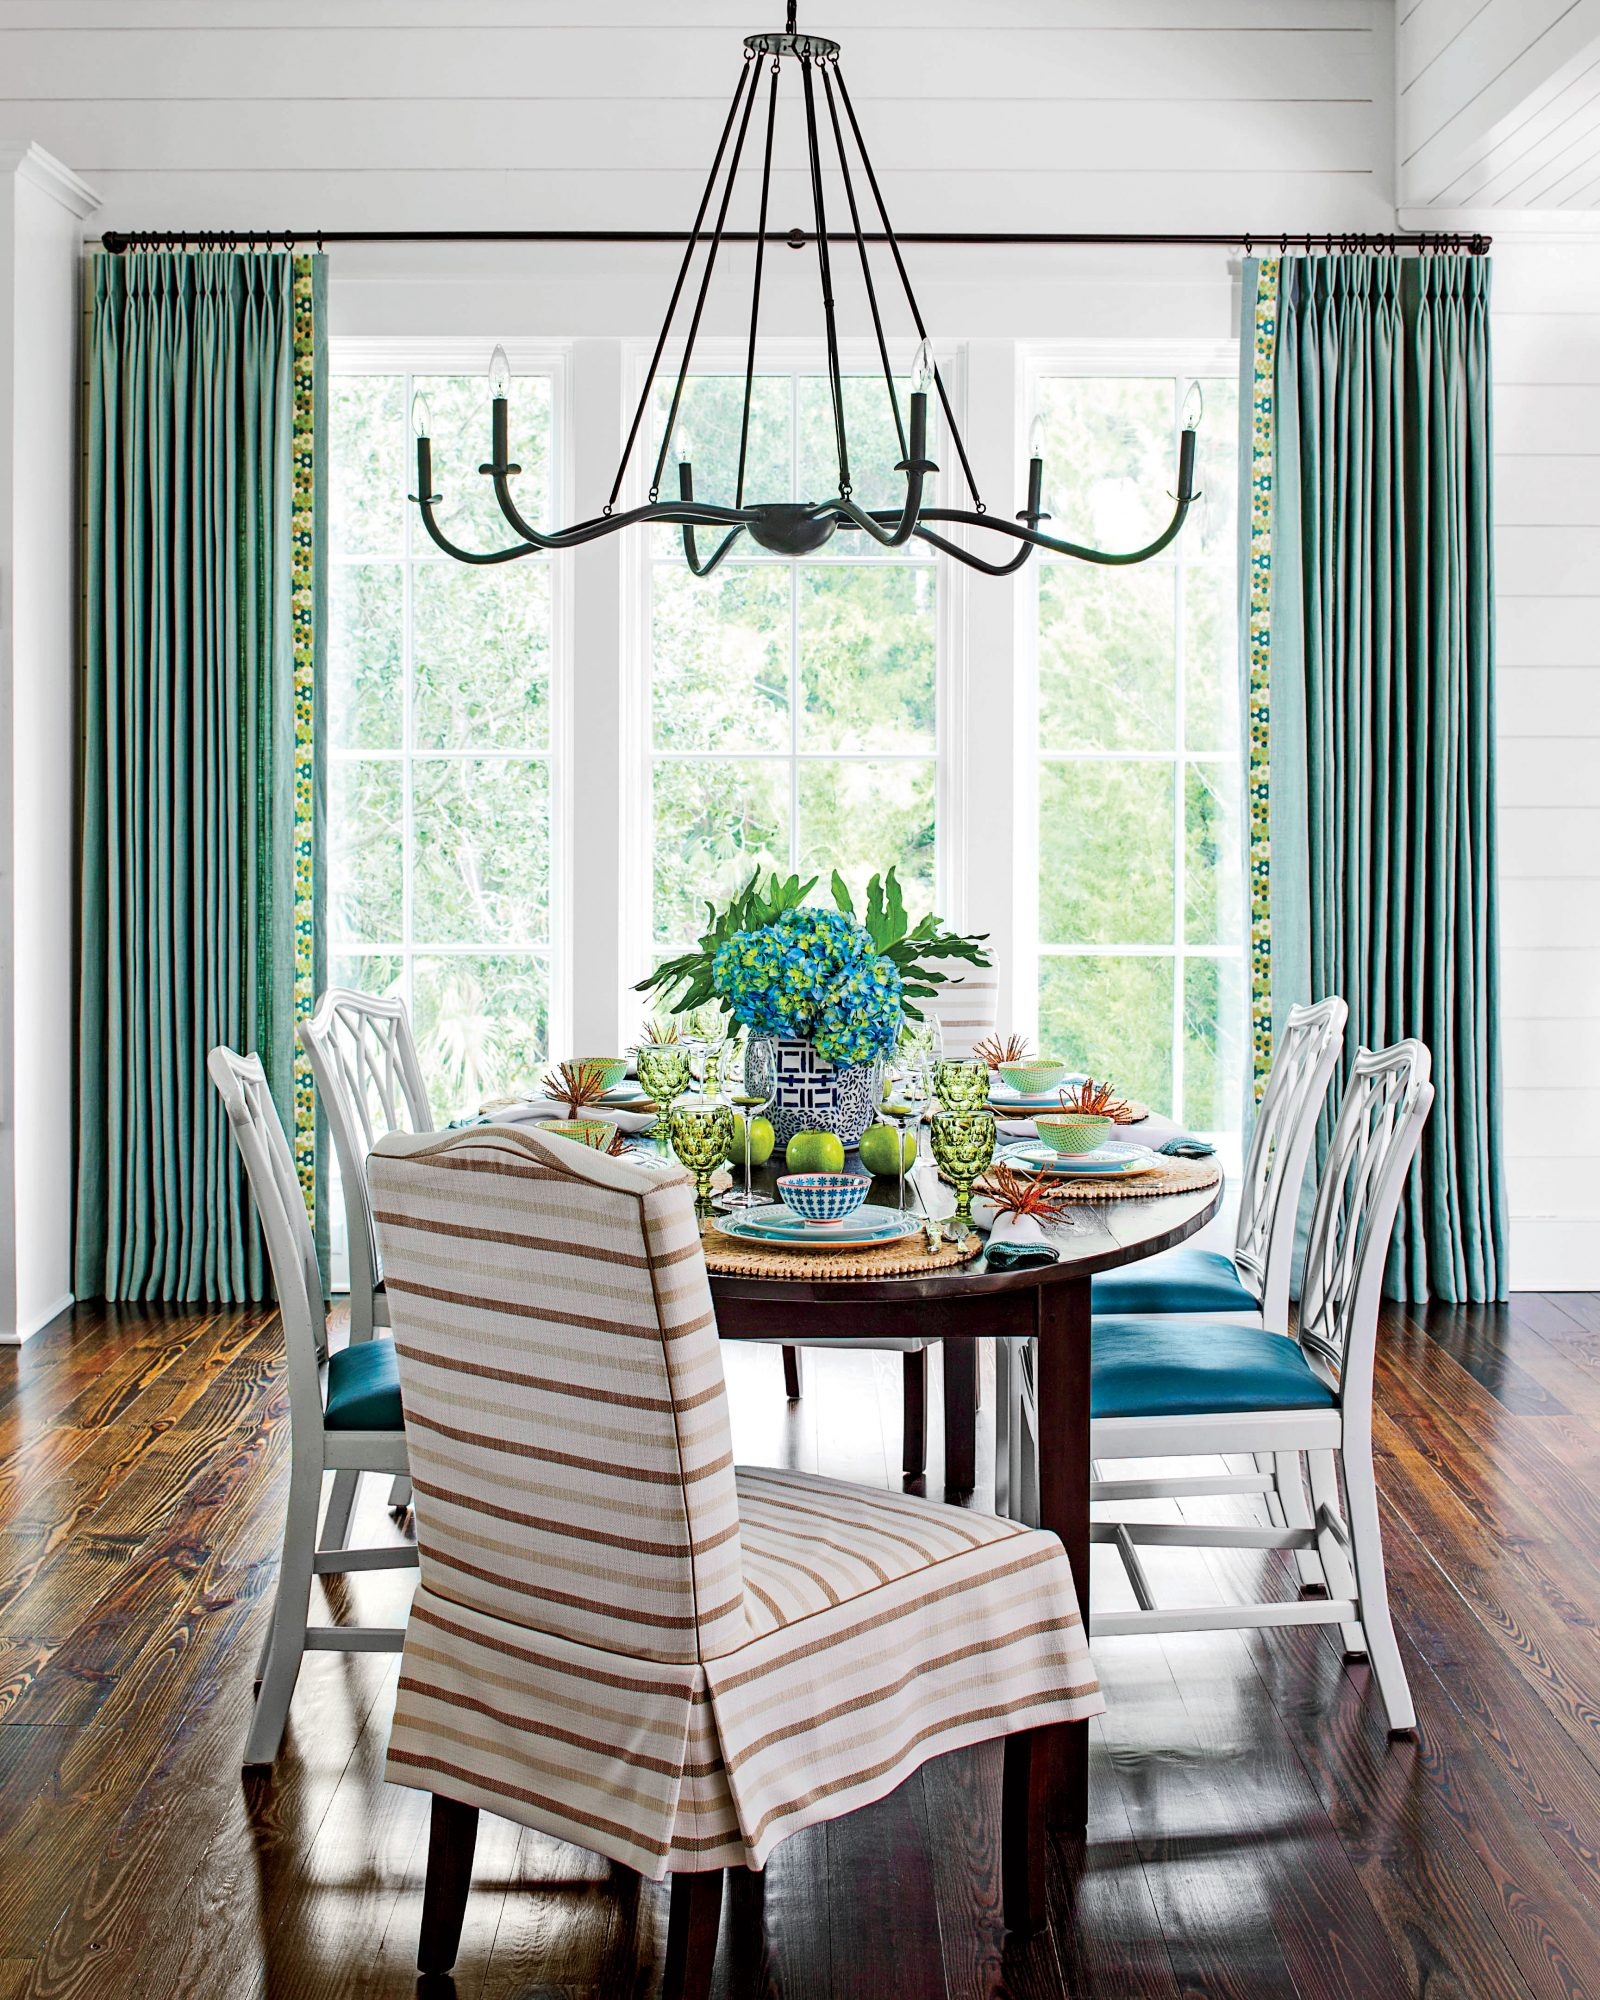 Casual Dining Room Decor Ideas: Stylish Dining Room Decorating Ideas